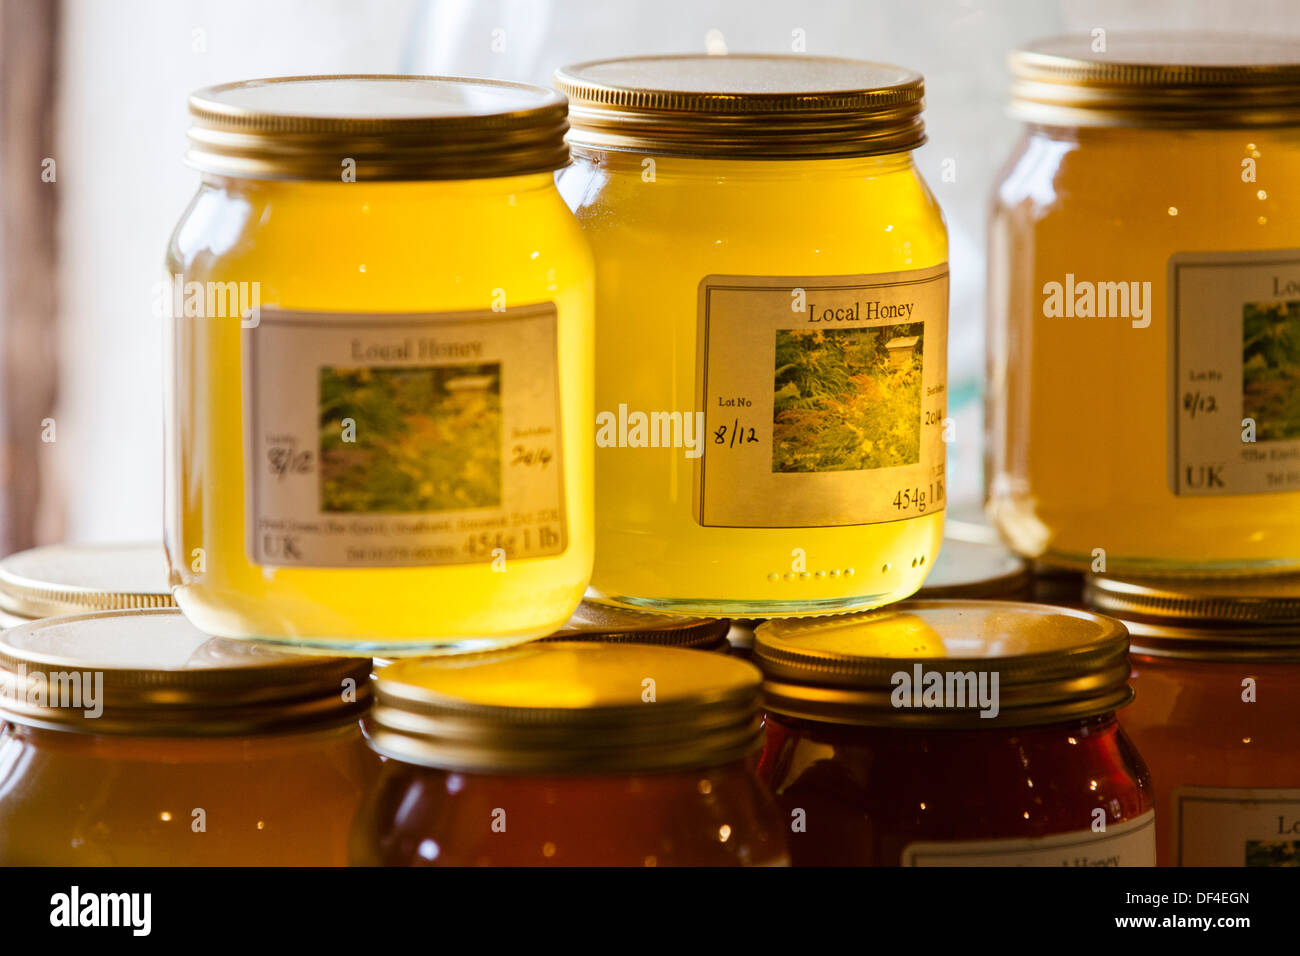 Jars of stacked Organic, home made honey on a window sill - Stock Image